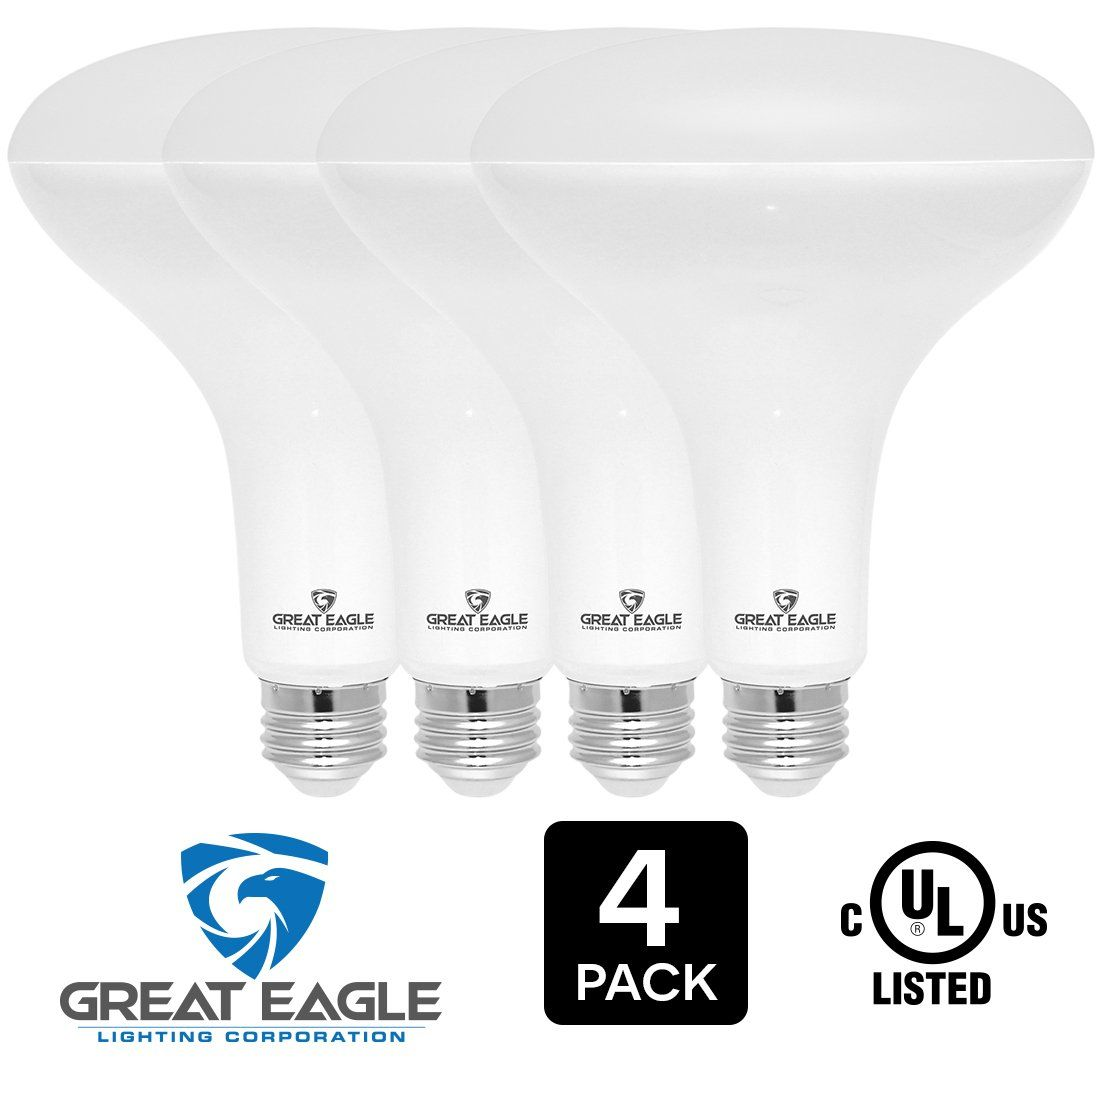 Great eagle led br40 2700k dimmable light bulb 15w120w equivalent great eagle led dimmable light bulb equivalent ul listed 1470 lumens warm white color for recessed and track lighting fixtures arubaitofo Image collections